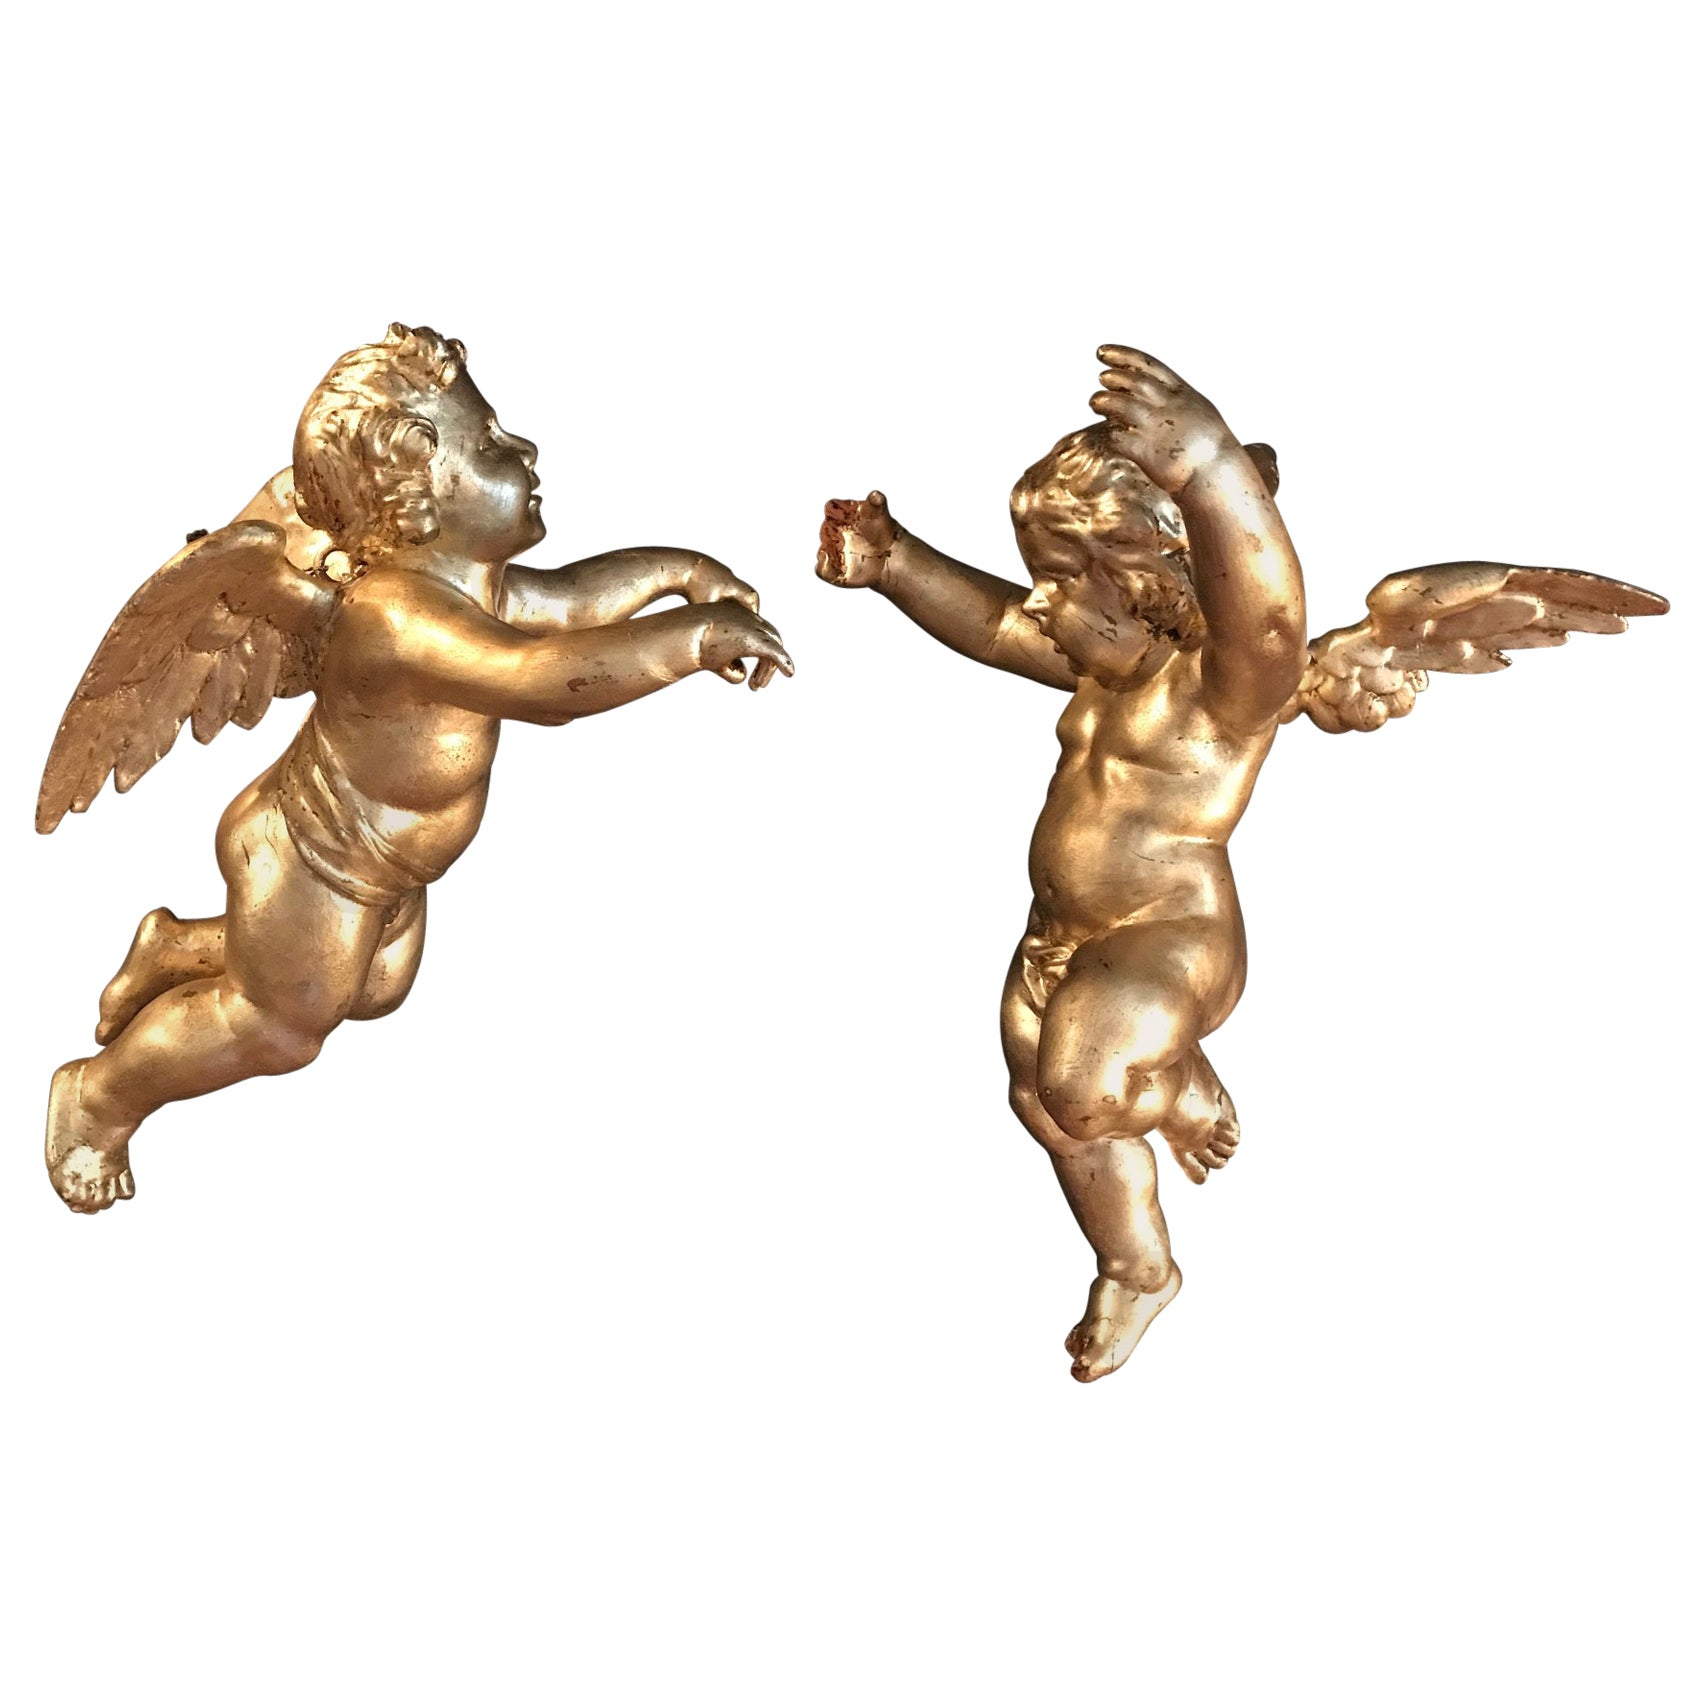 Antique Pair of Hanging Italian Hand Carved Wood Gilded Putti, Cherub, Angels